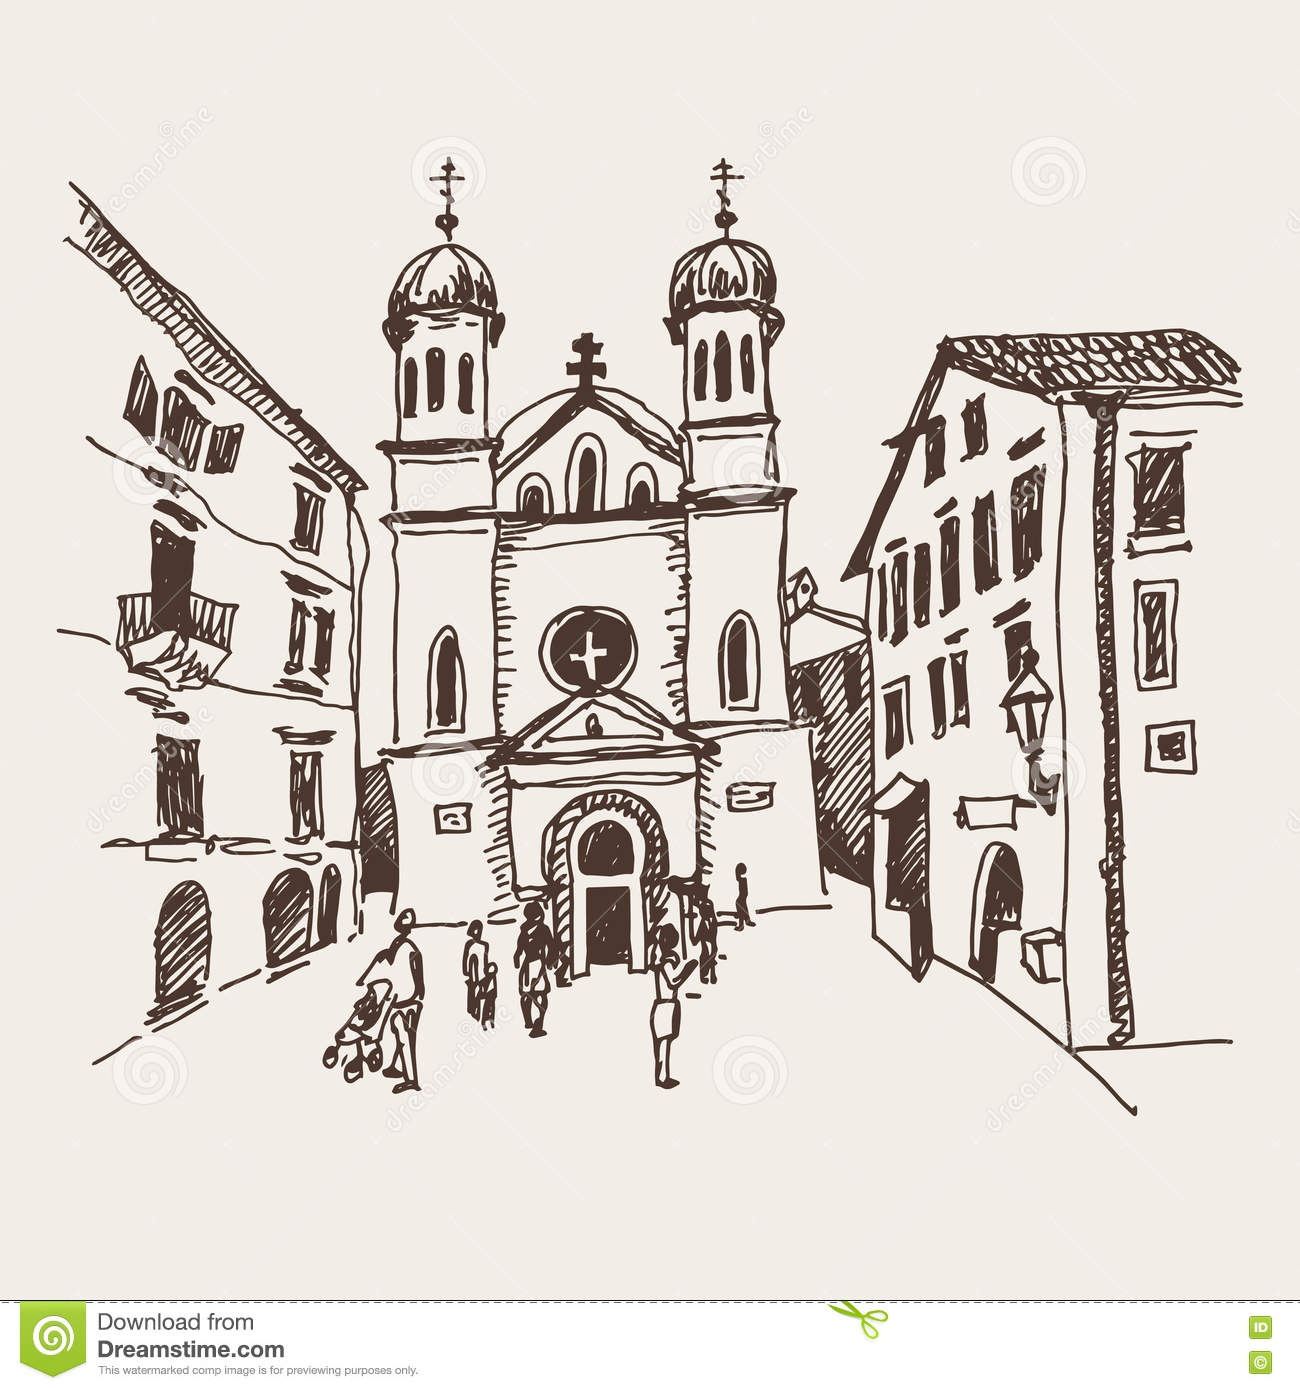 Sketch drawing of Church of Saint Tryphon in Kotor Montenegro